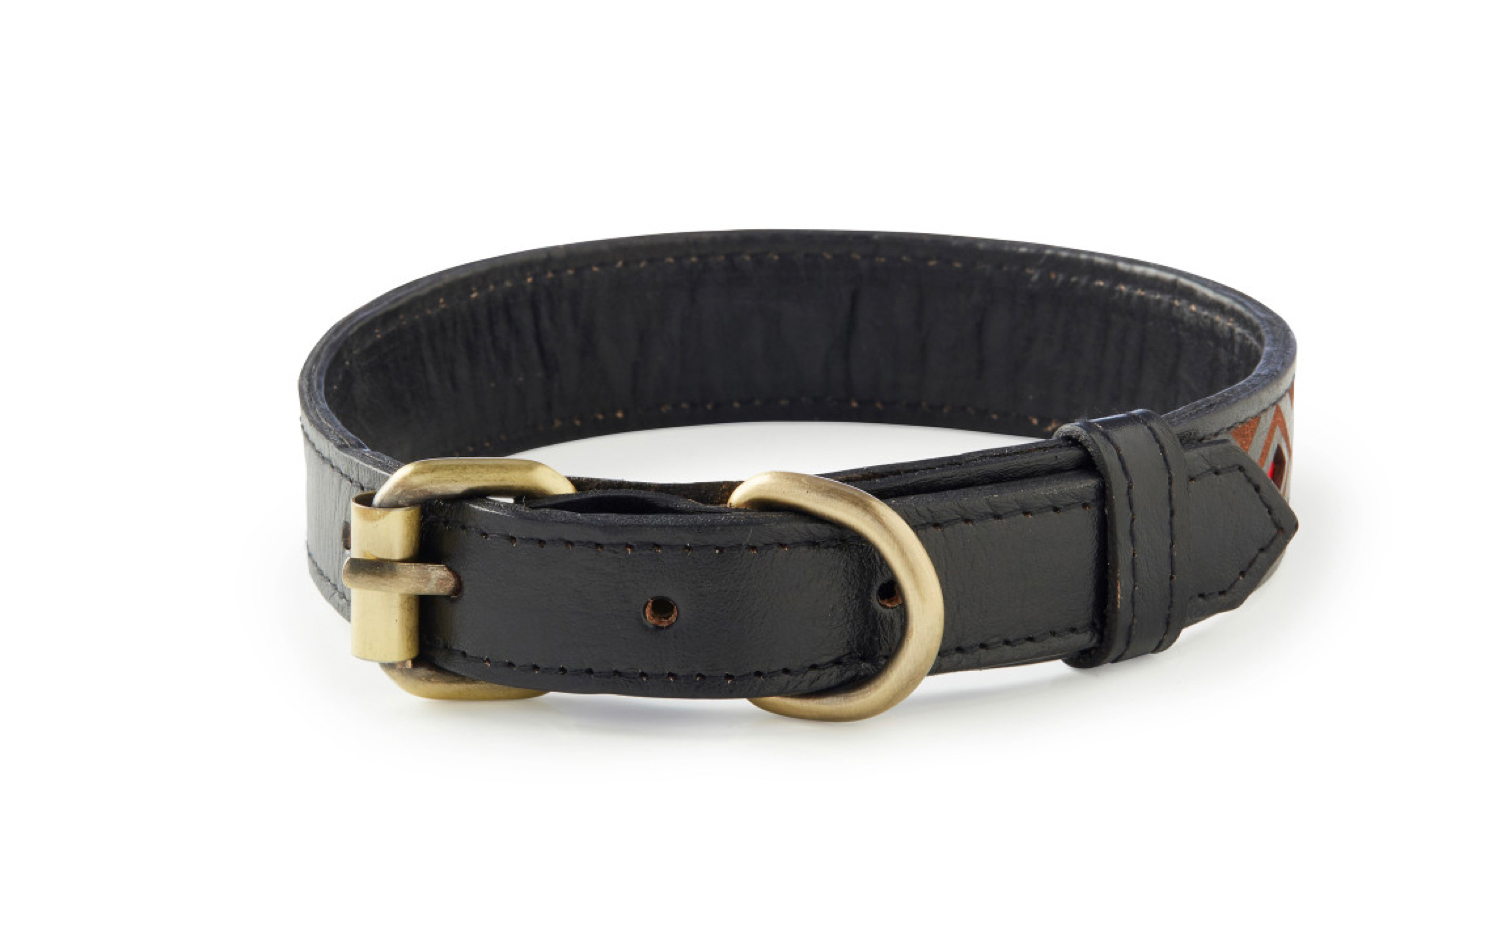 Hanalei - Black and Red Leather Dog Collar